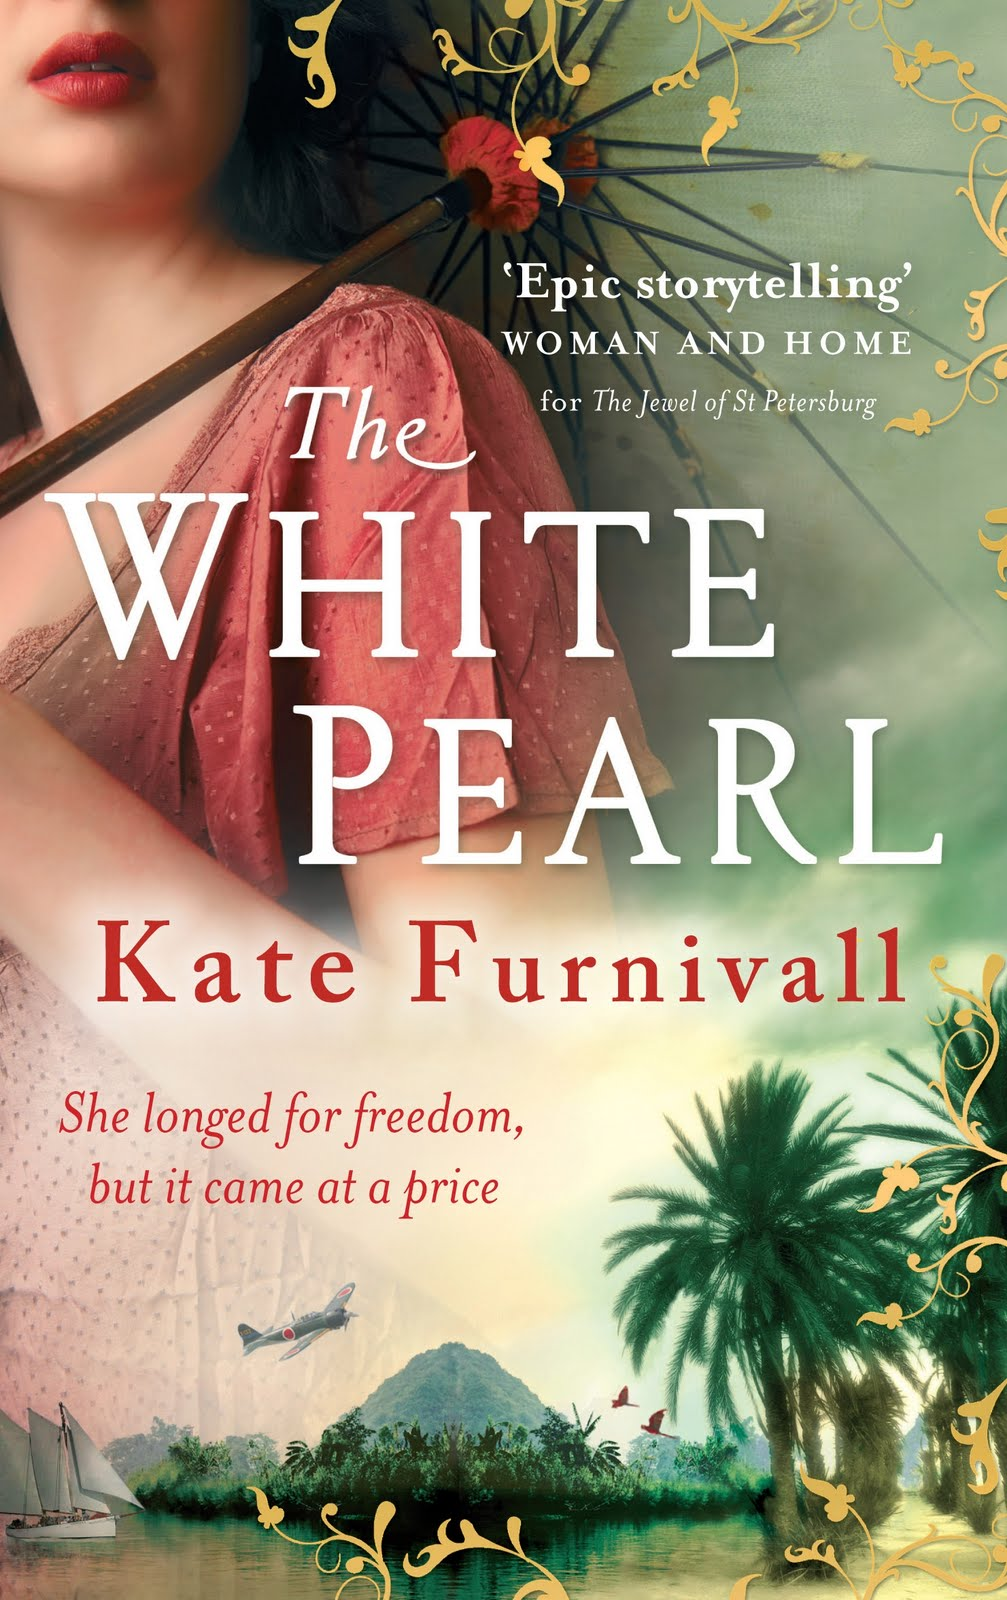 http://www.amazon.co.uk/The-White-Pearl-Kate-Furnivall/dp/0751543365